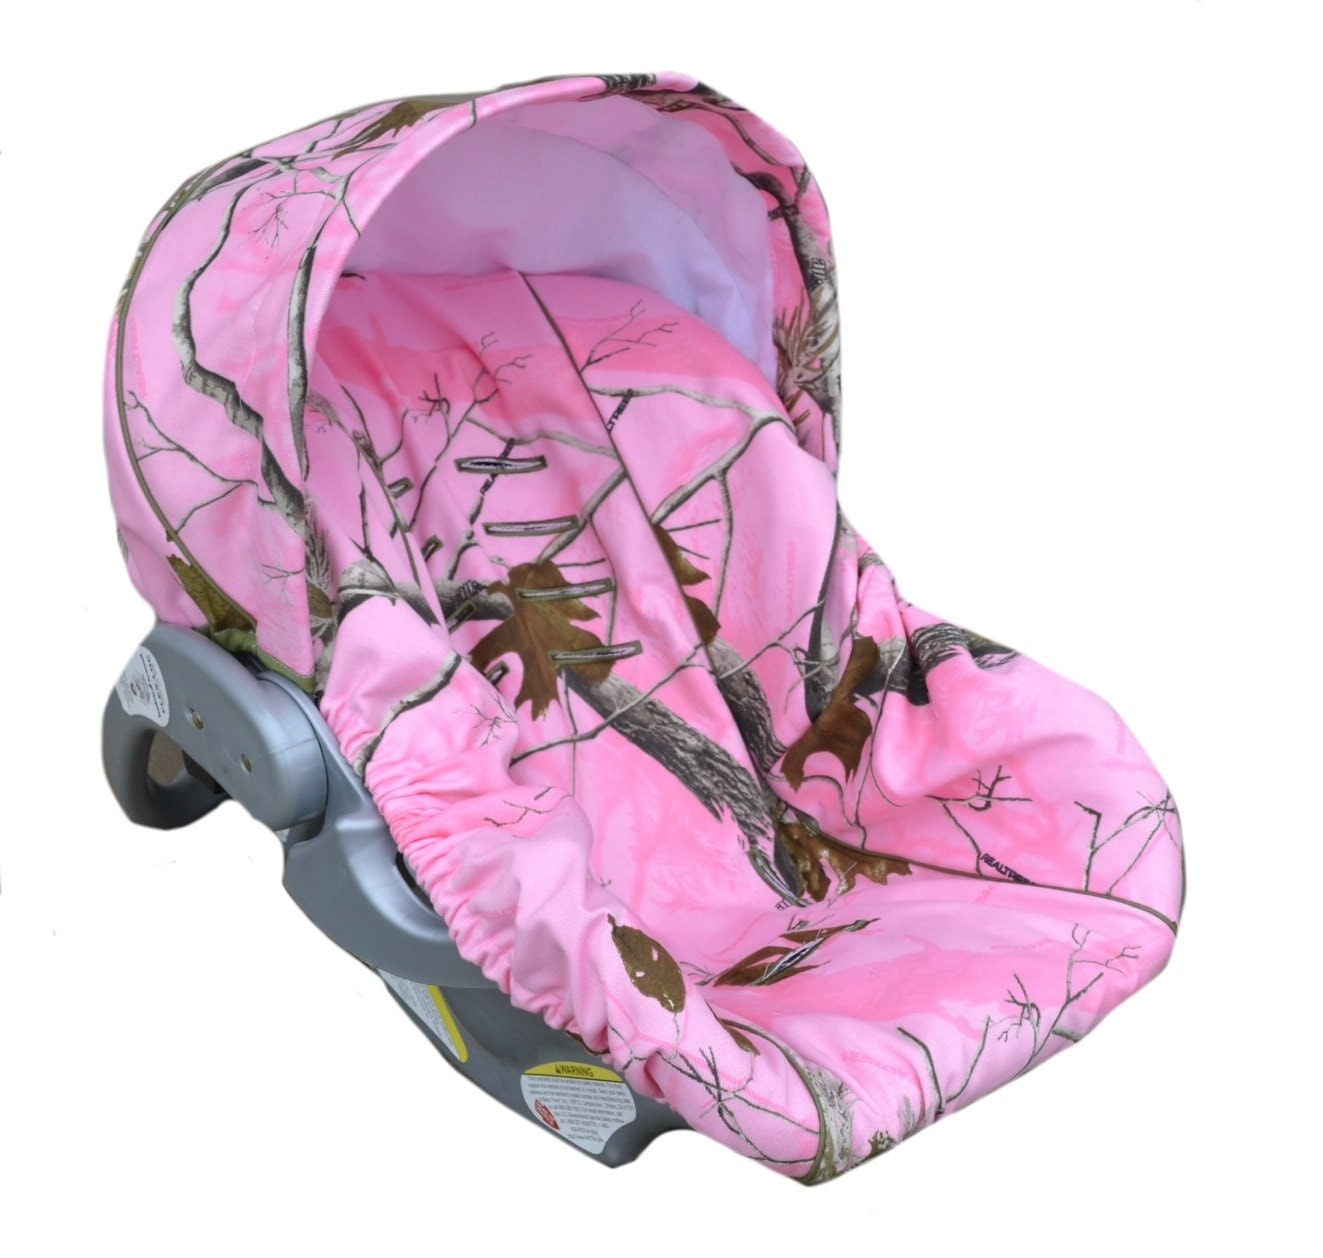 Baby Car Sear Cover Infant Seat Slip Pink